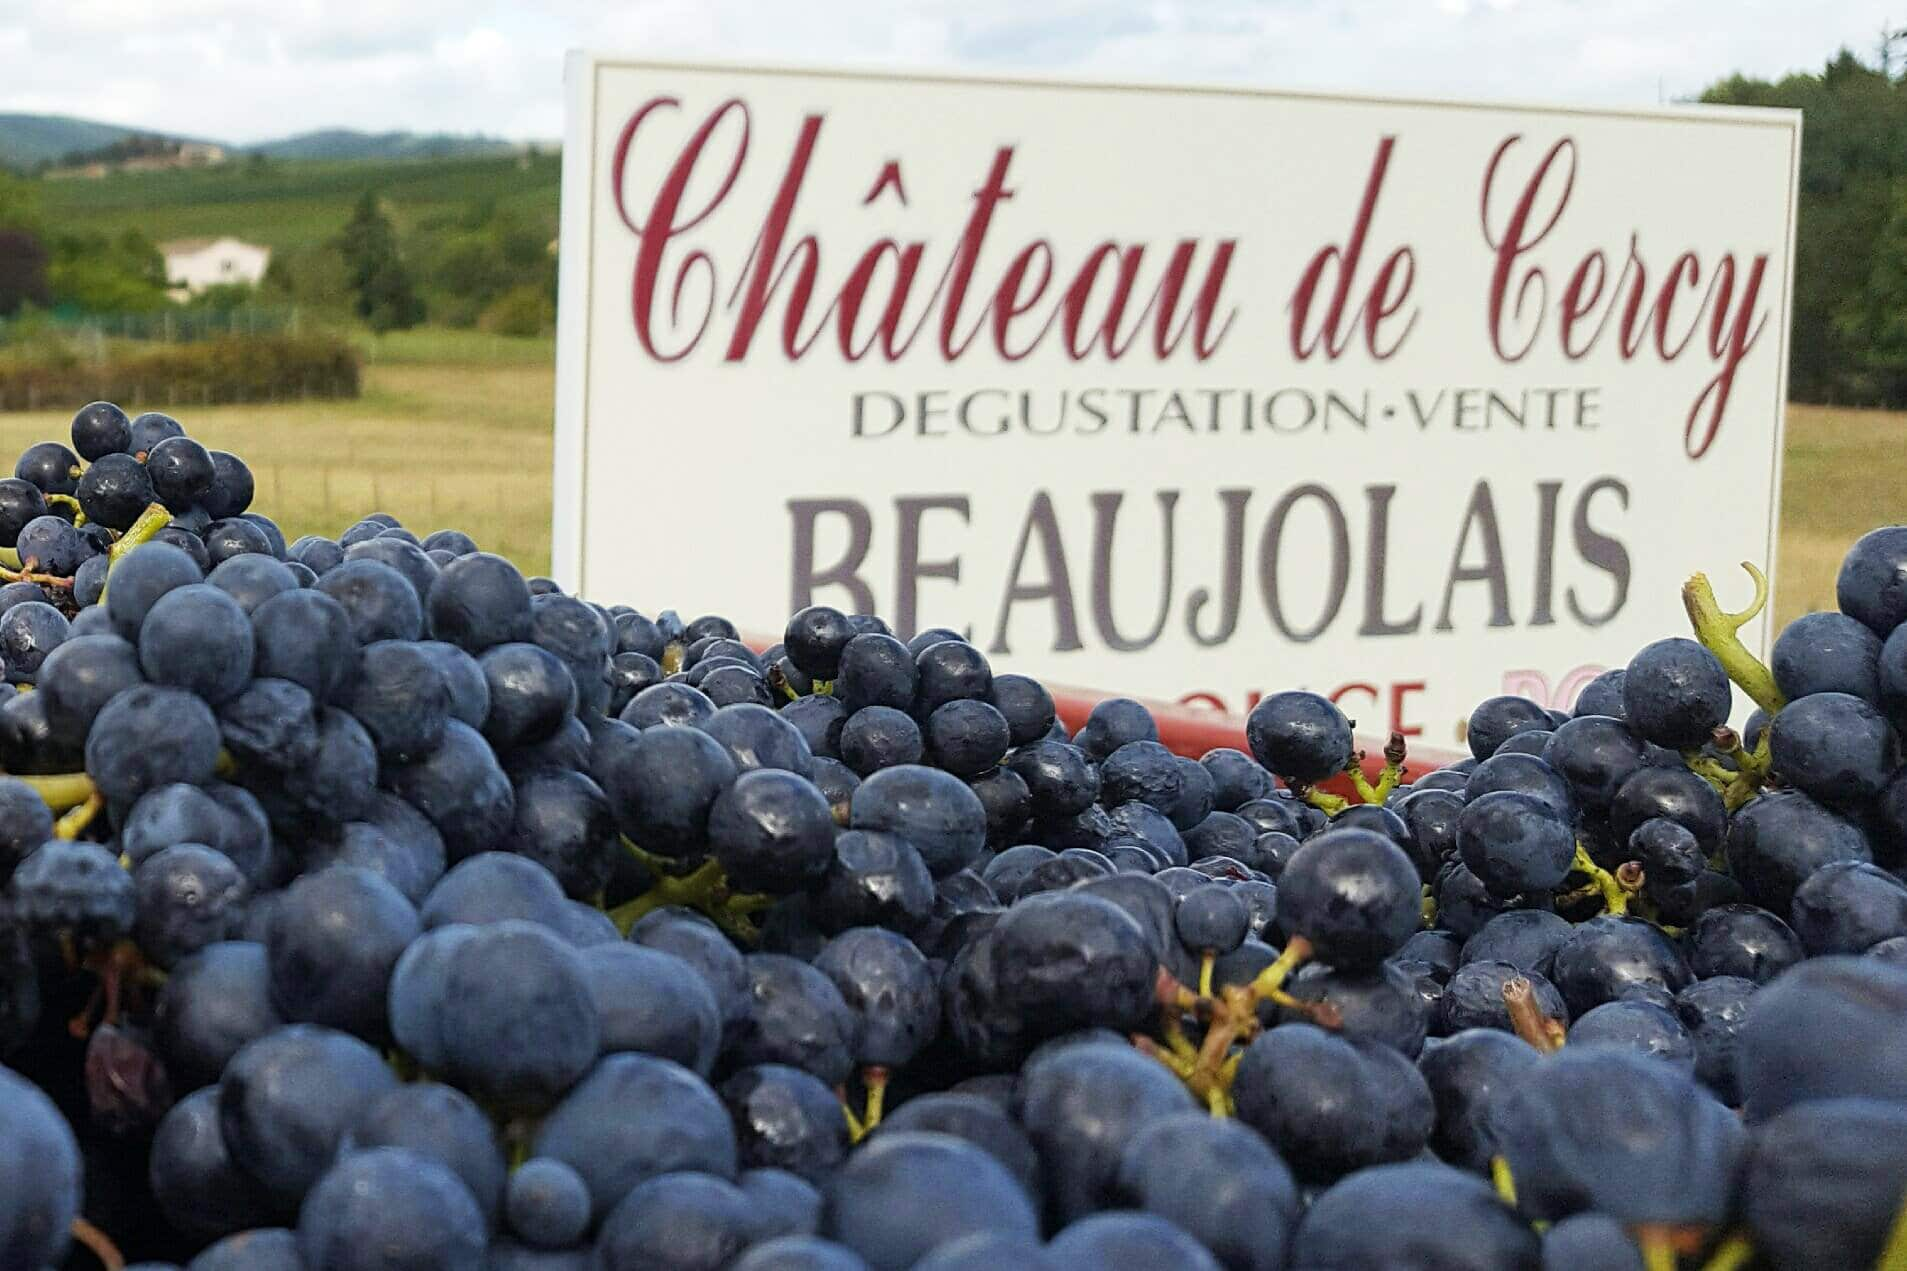 raisin-chateau-cercy